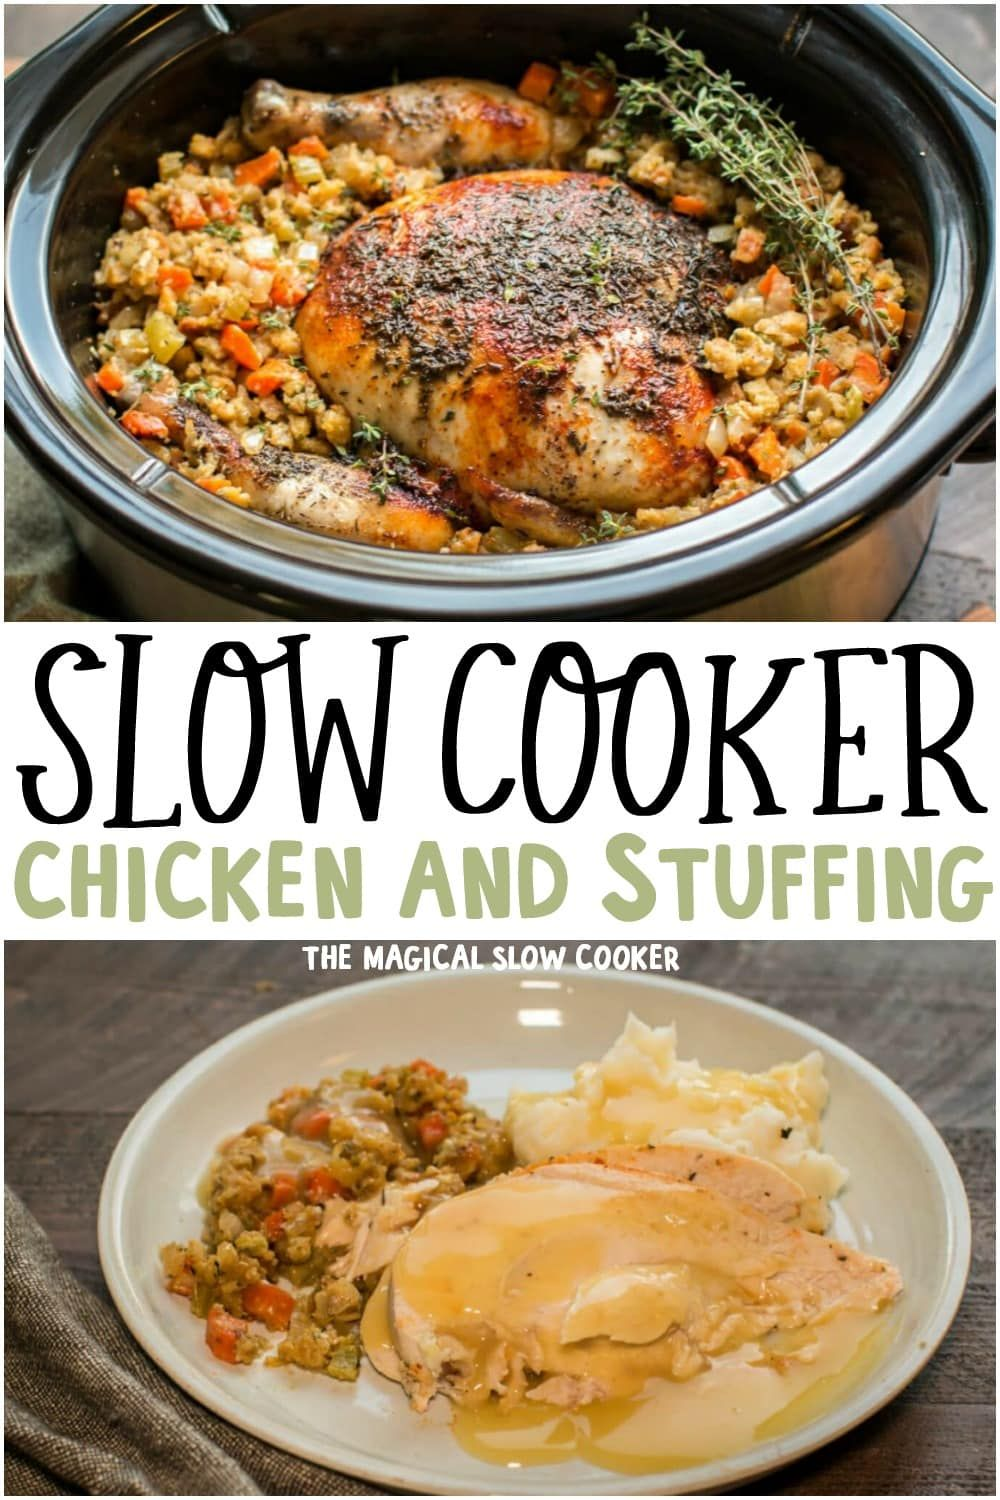 Photo of Slow Cooker Whole Chicken with Stuffing – The Magical Slow Cooker